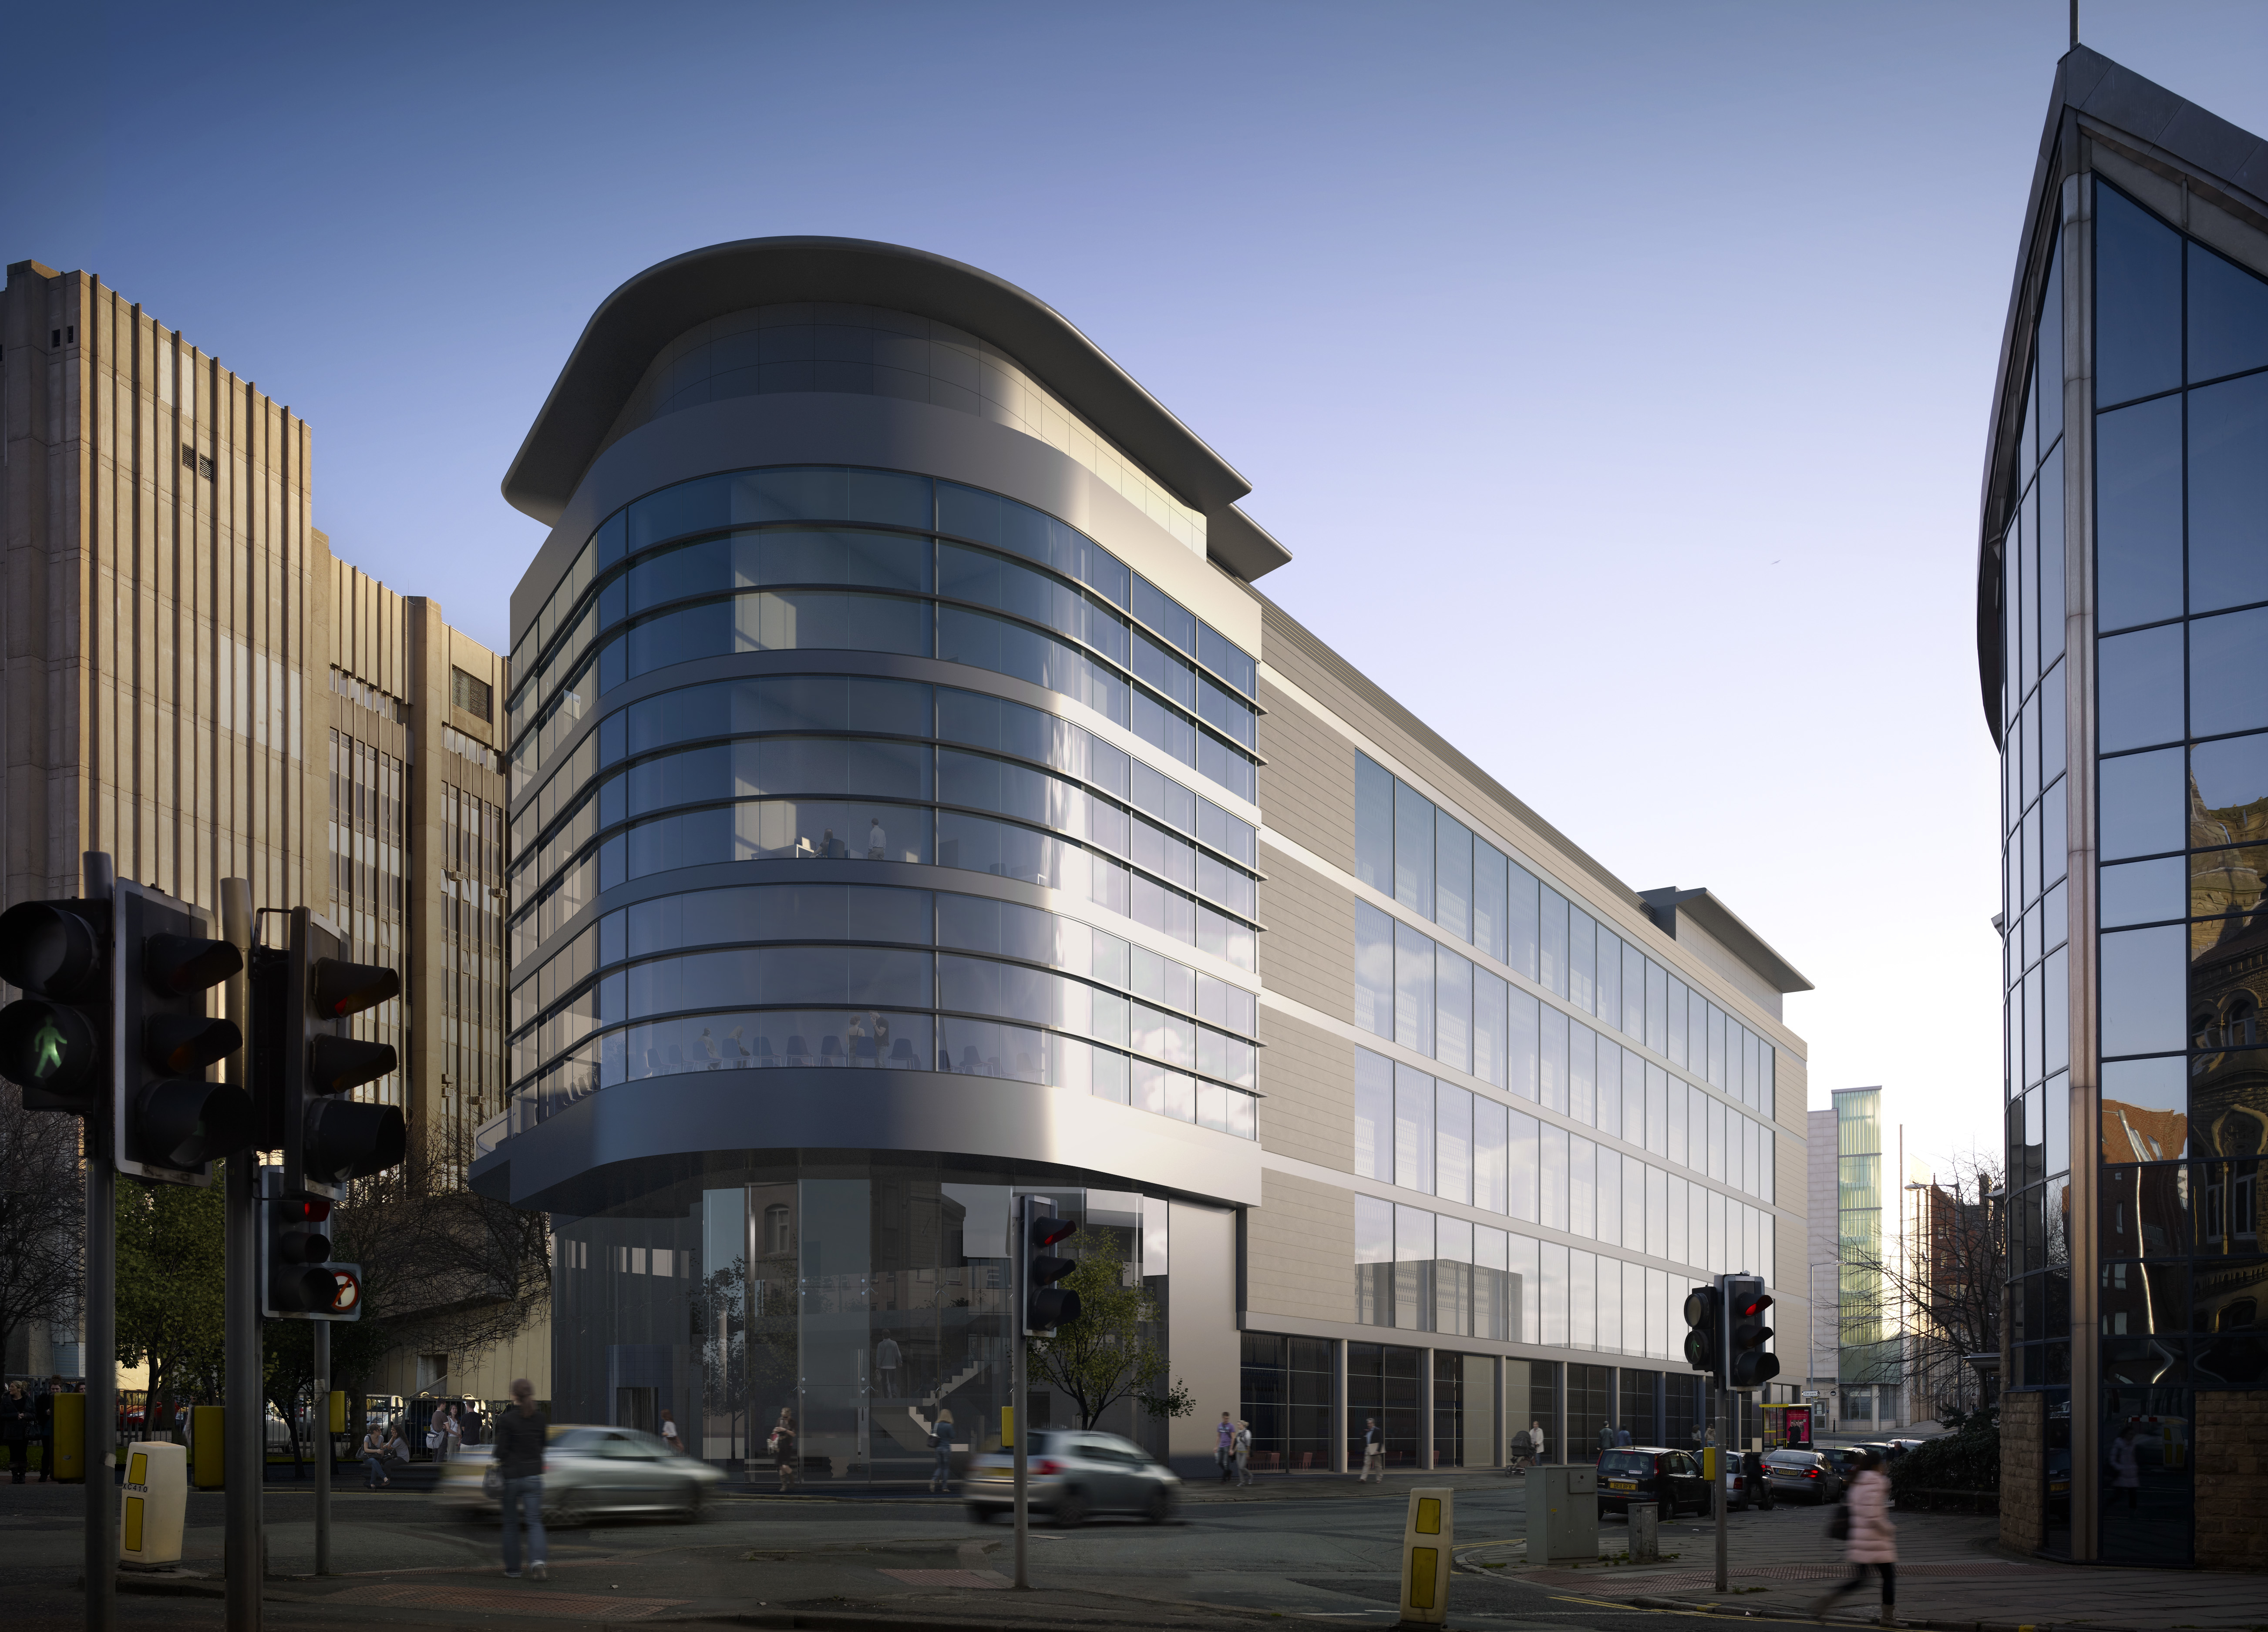 A computer generated image of the Liverpool Life Sciences Accelerator